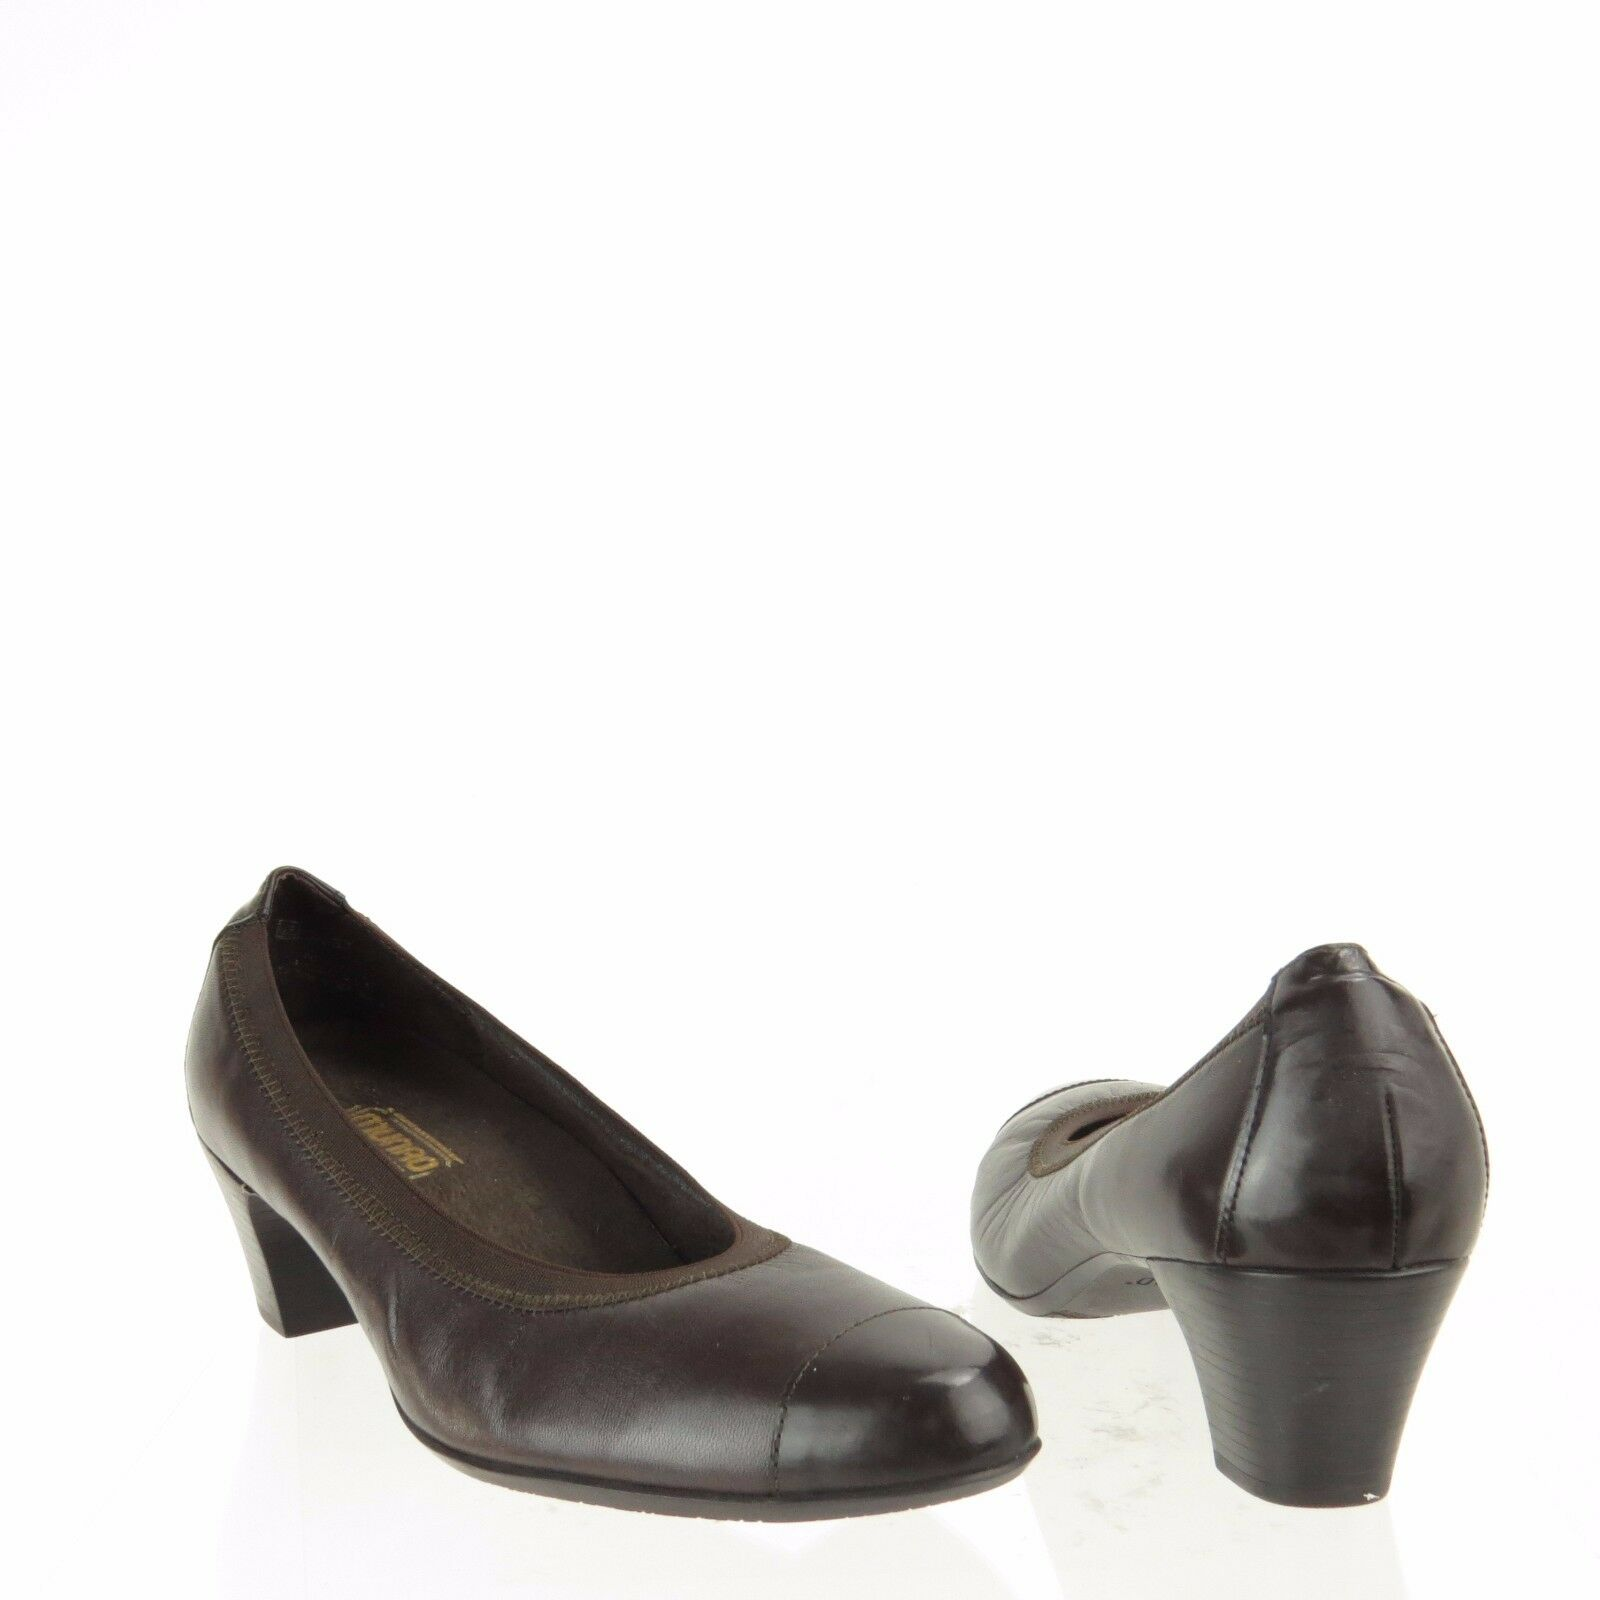 Women's Munro Odette shoes Dark Brown Leather Cap Toe Pumps Size 9.5 M NEW